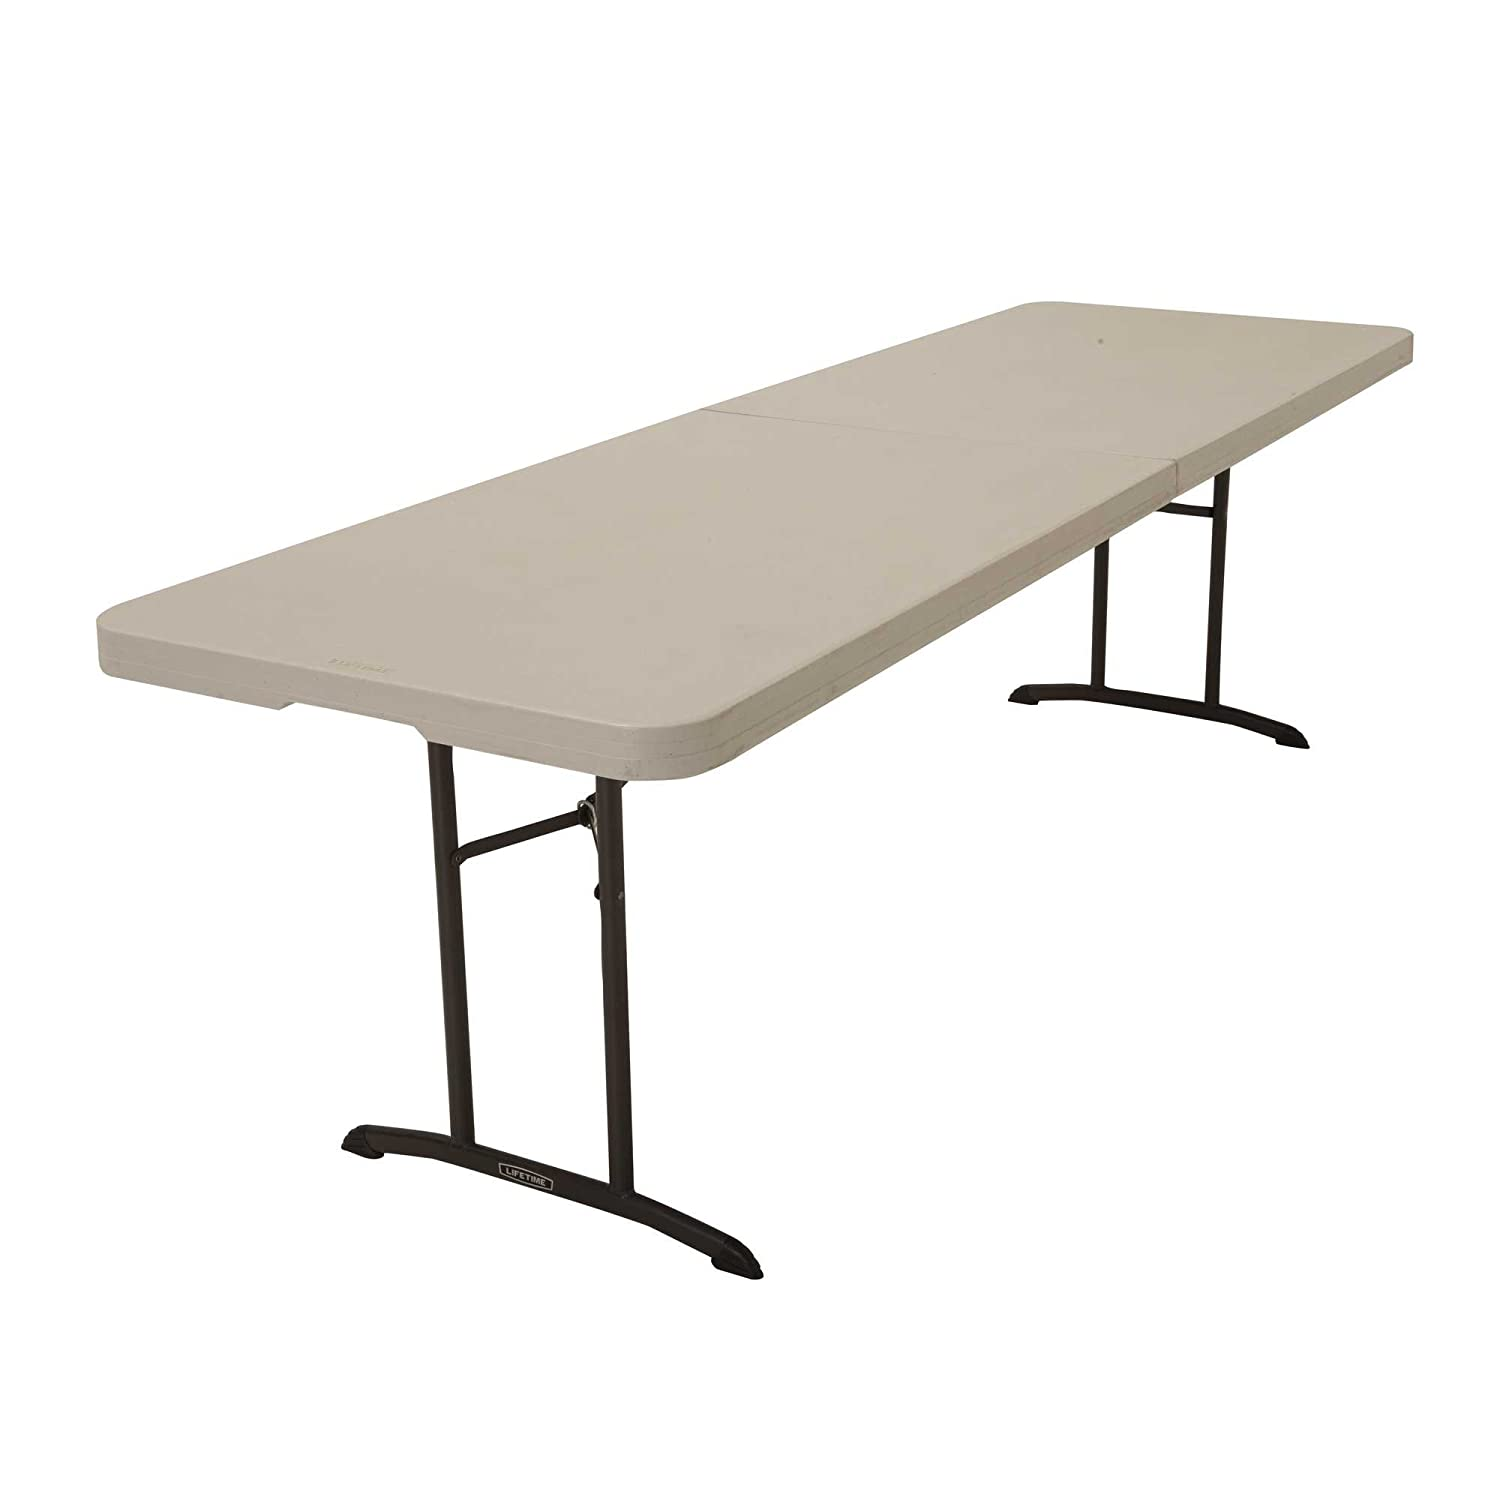 Merveilleux Amazon.com: Lifetime 80175 Fold In Half Banquet Table, 8 Feet, Almond:  Garden U0026 Outdoor